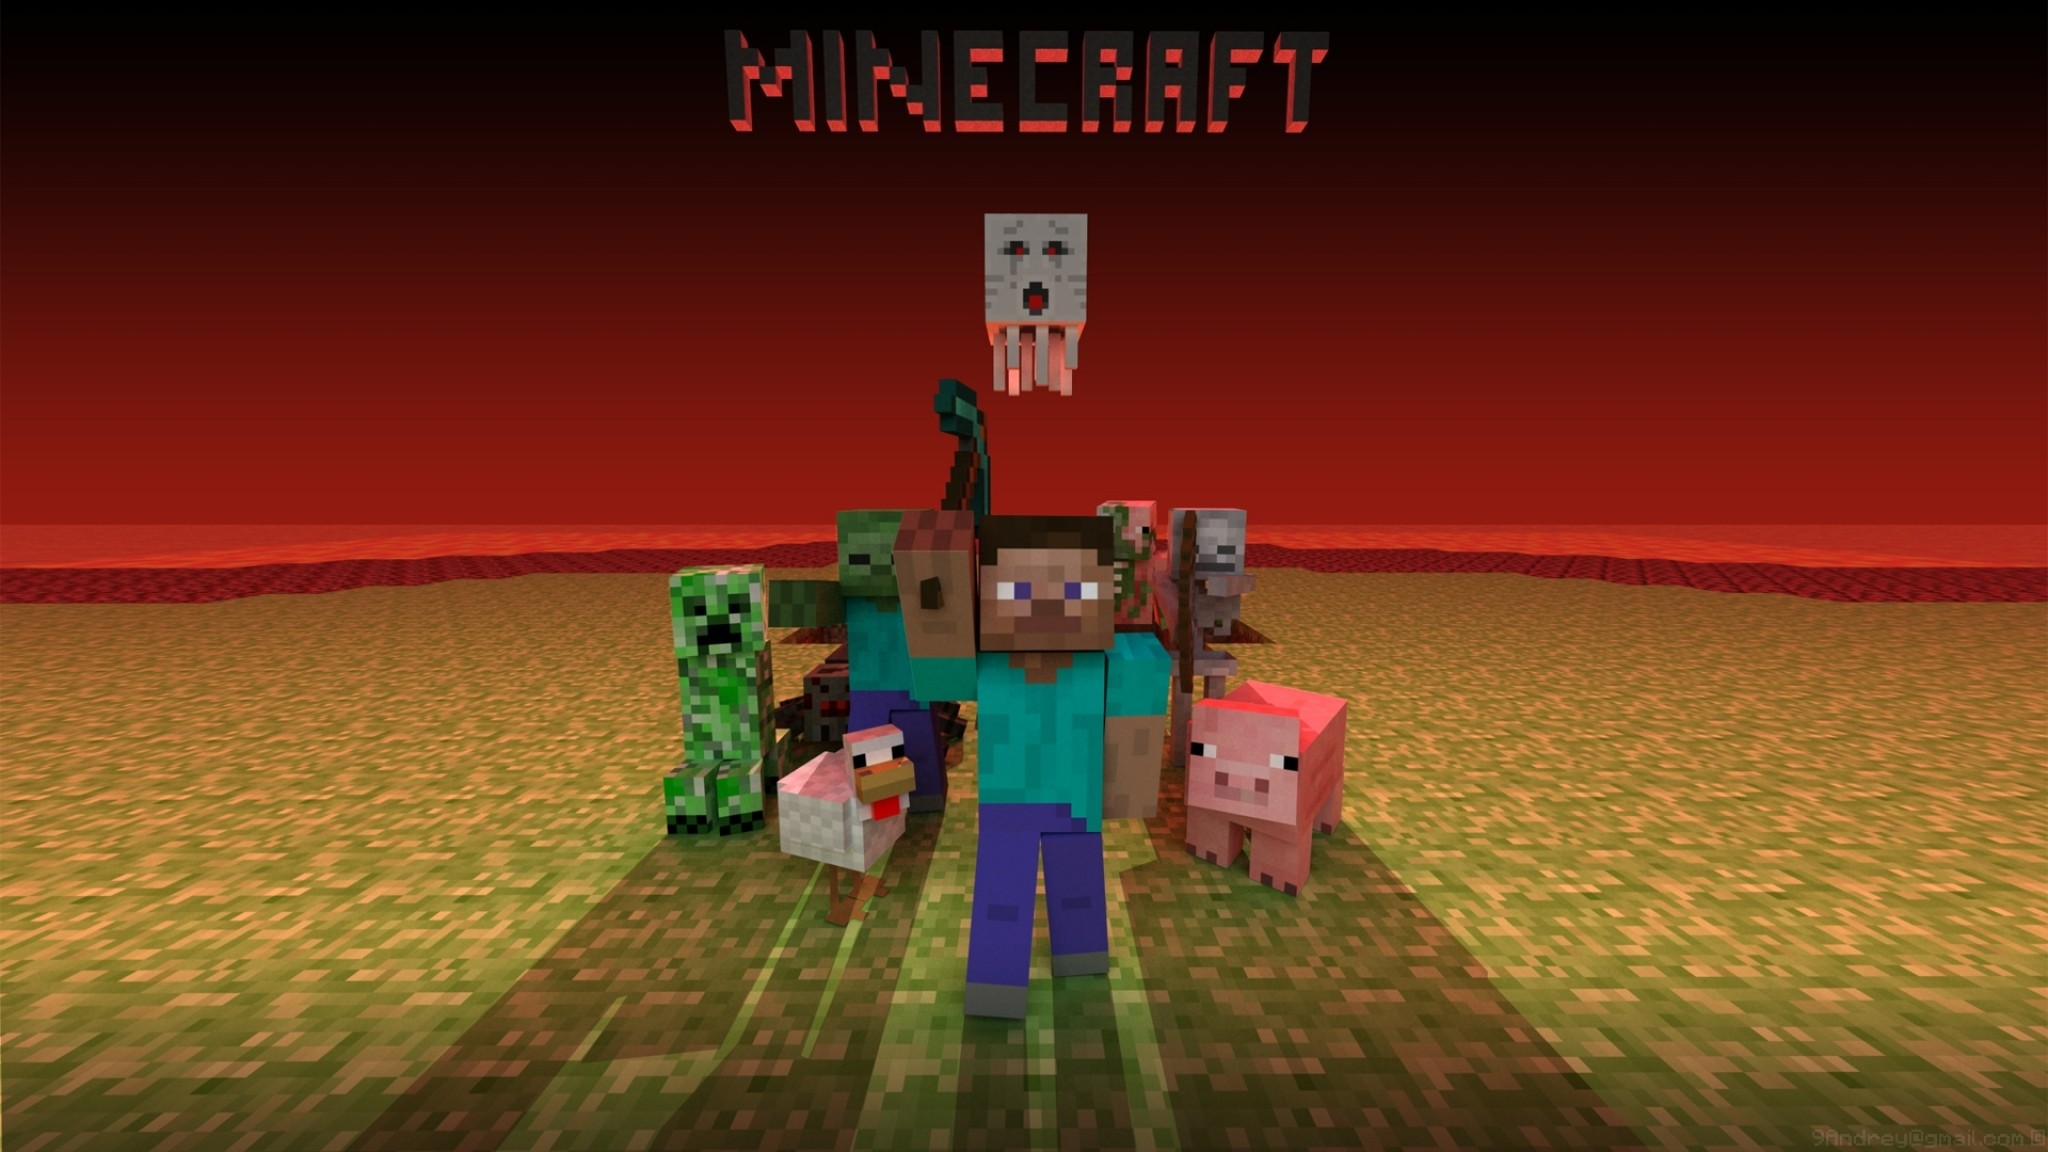 2048x1152 Preview wallpaper minecraft, mobs, creeper, snake, zombie, chicken, pig,